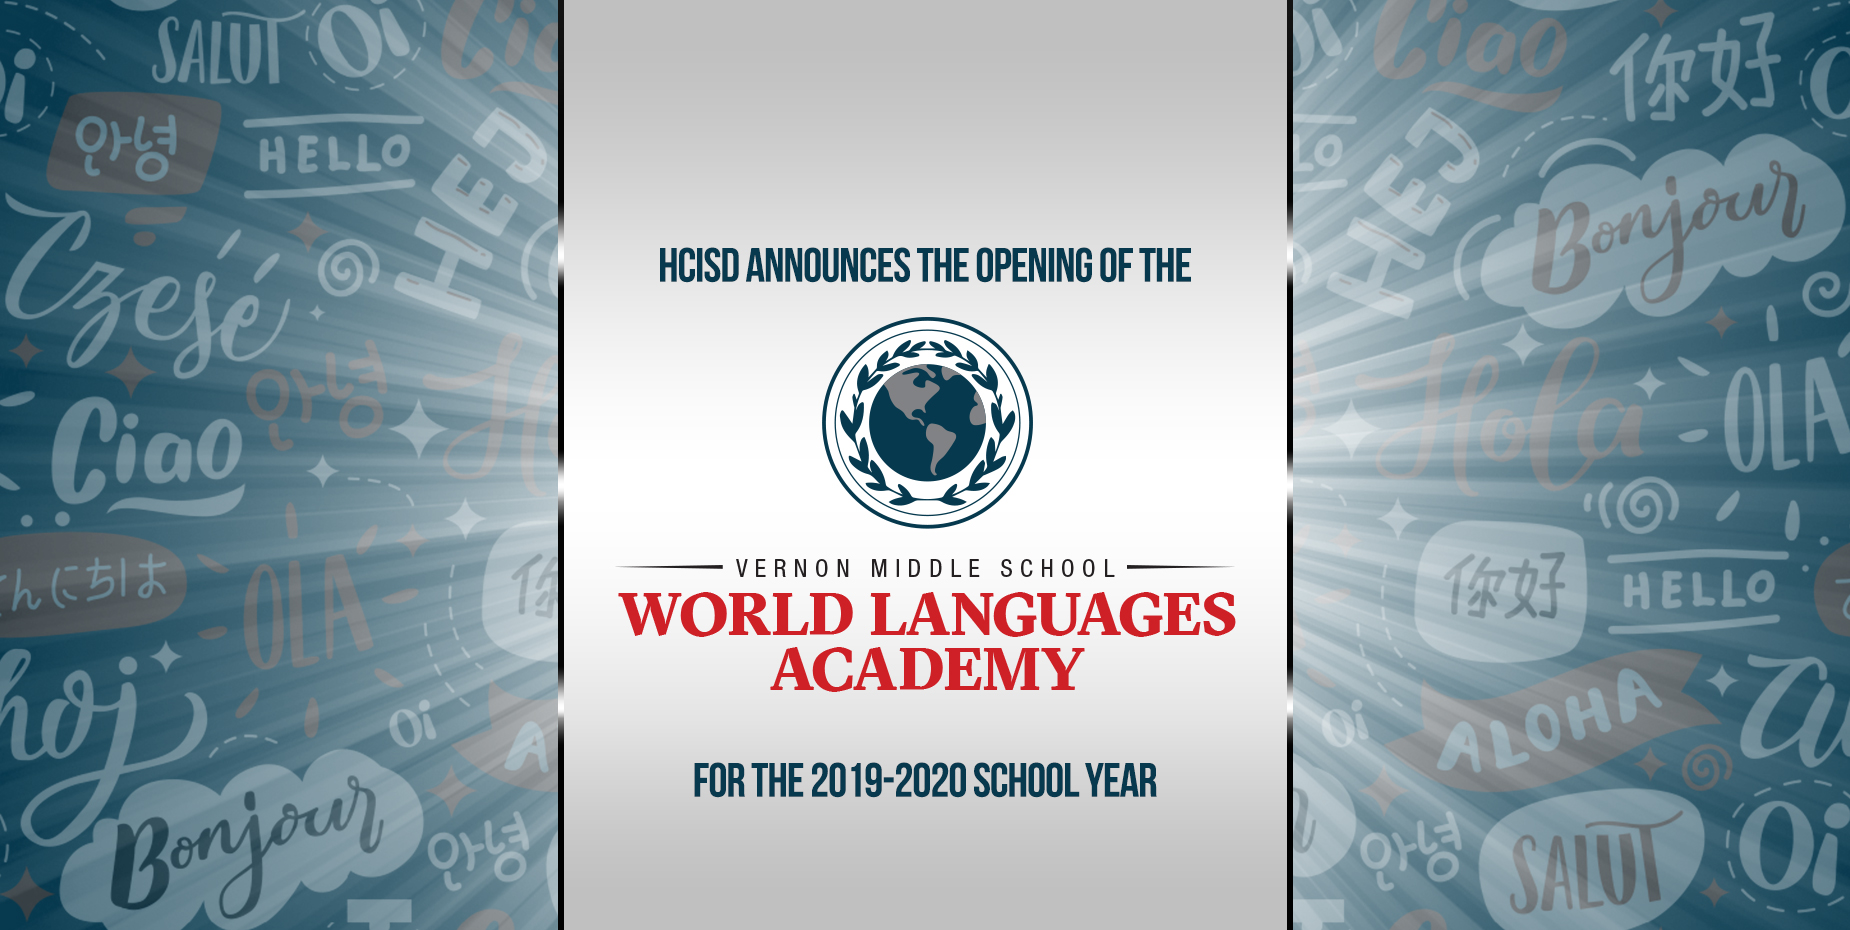 HCISD announces the opening of a World Languages Academy for the 2019-2020 school year